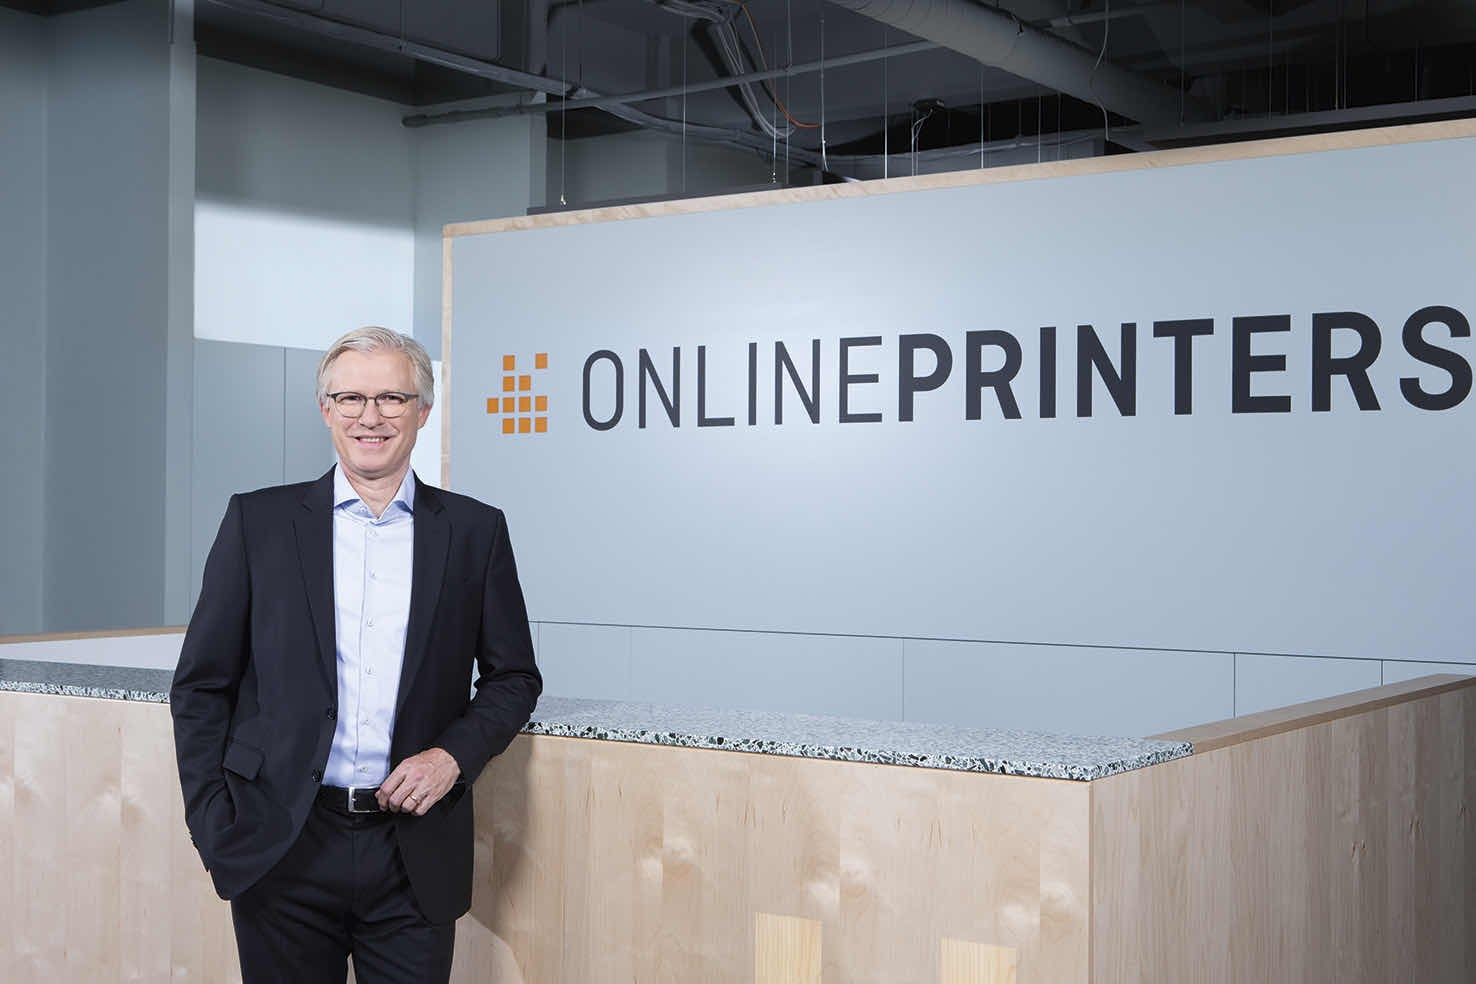 Roland Keppler, CEO of Online printers